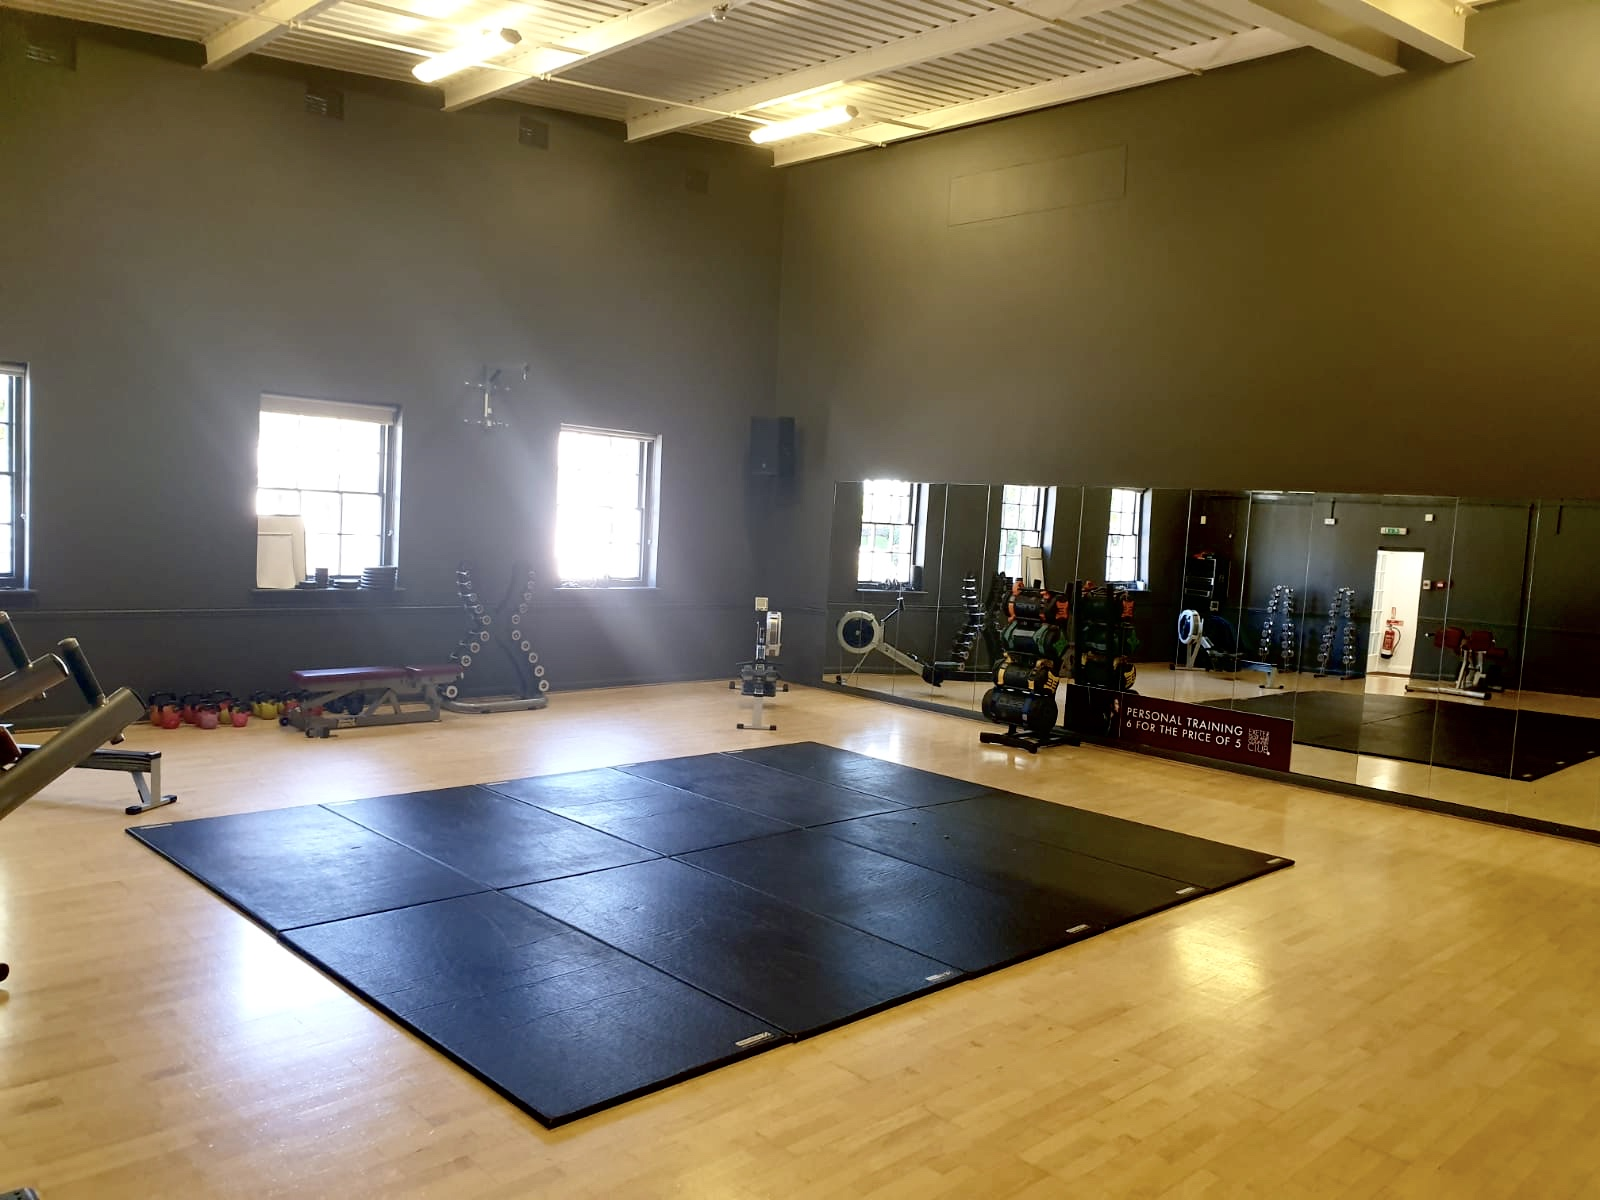 covid layout gym, gym opening, gym exeter, covid safe gym exeter, exeter golf and country club